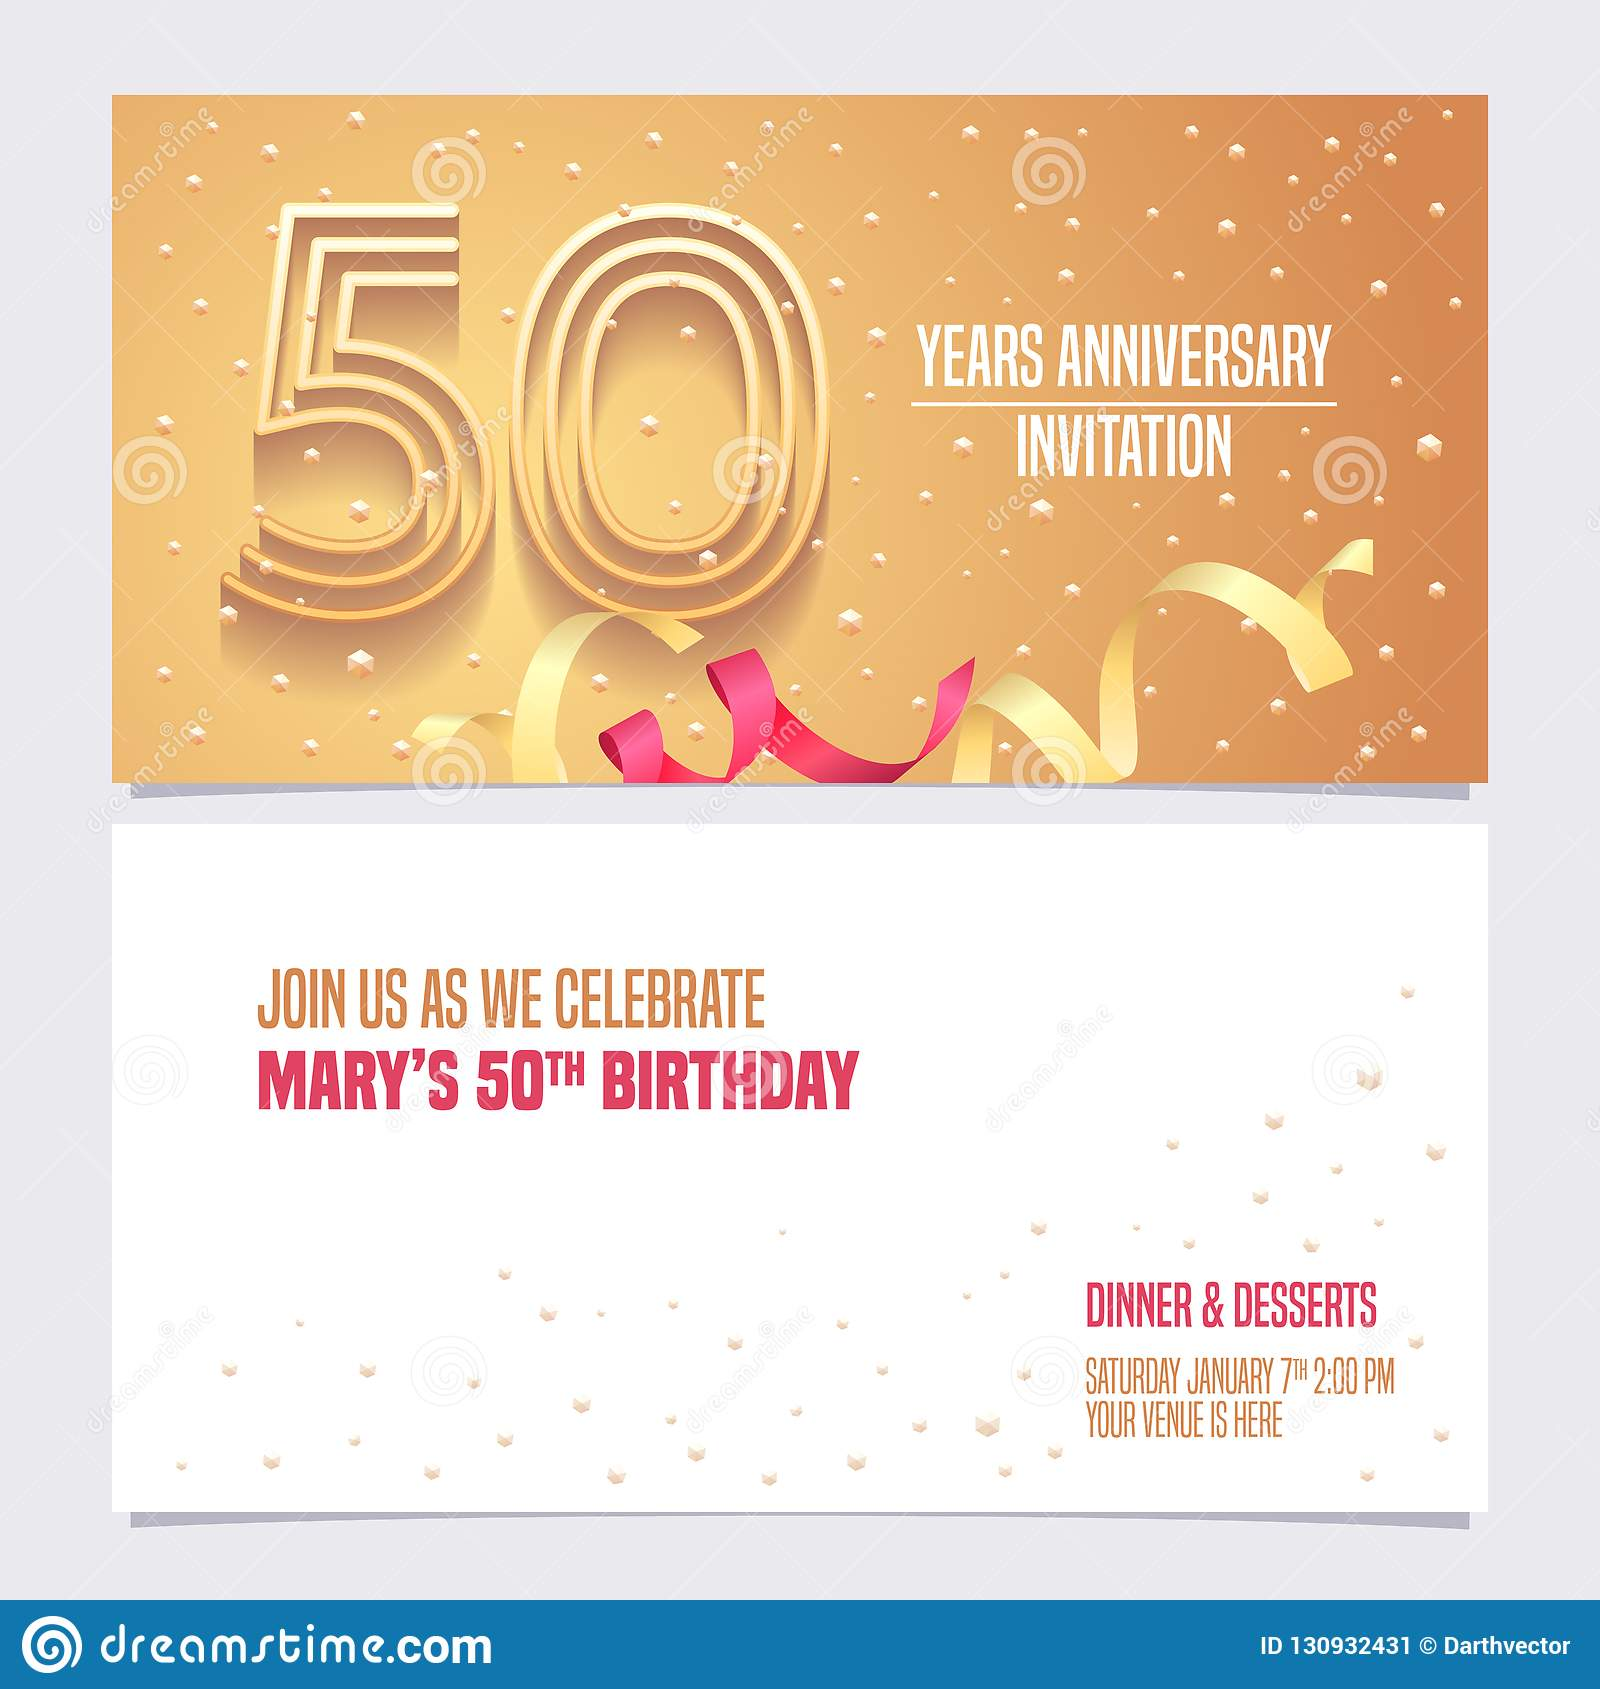 50 Years Anniversary Invitation Vector Illustration Design Element